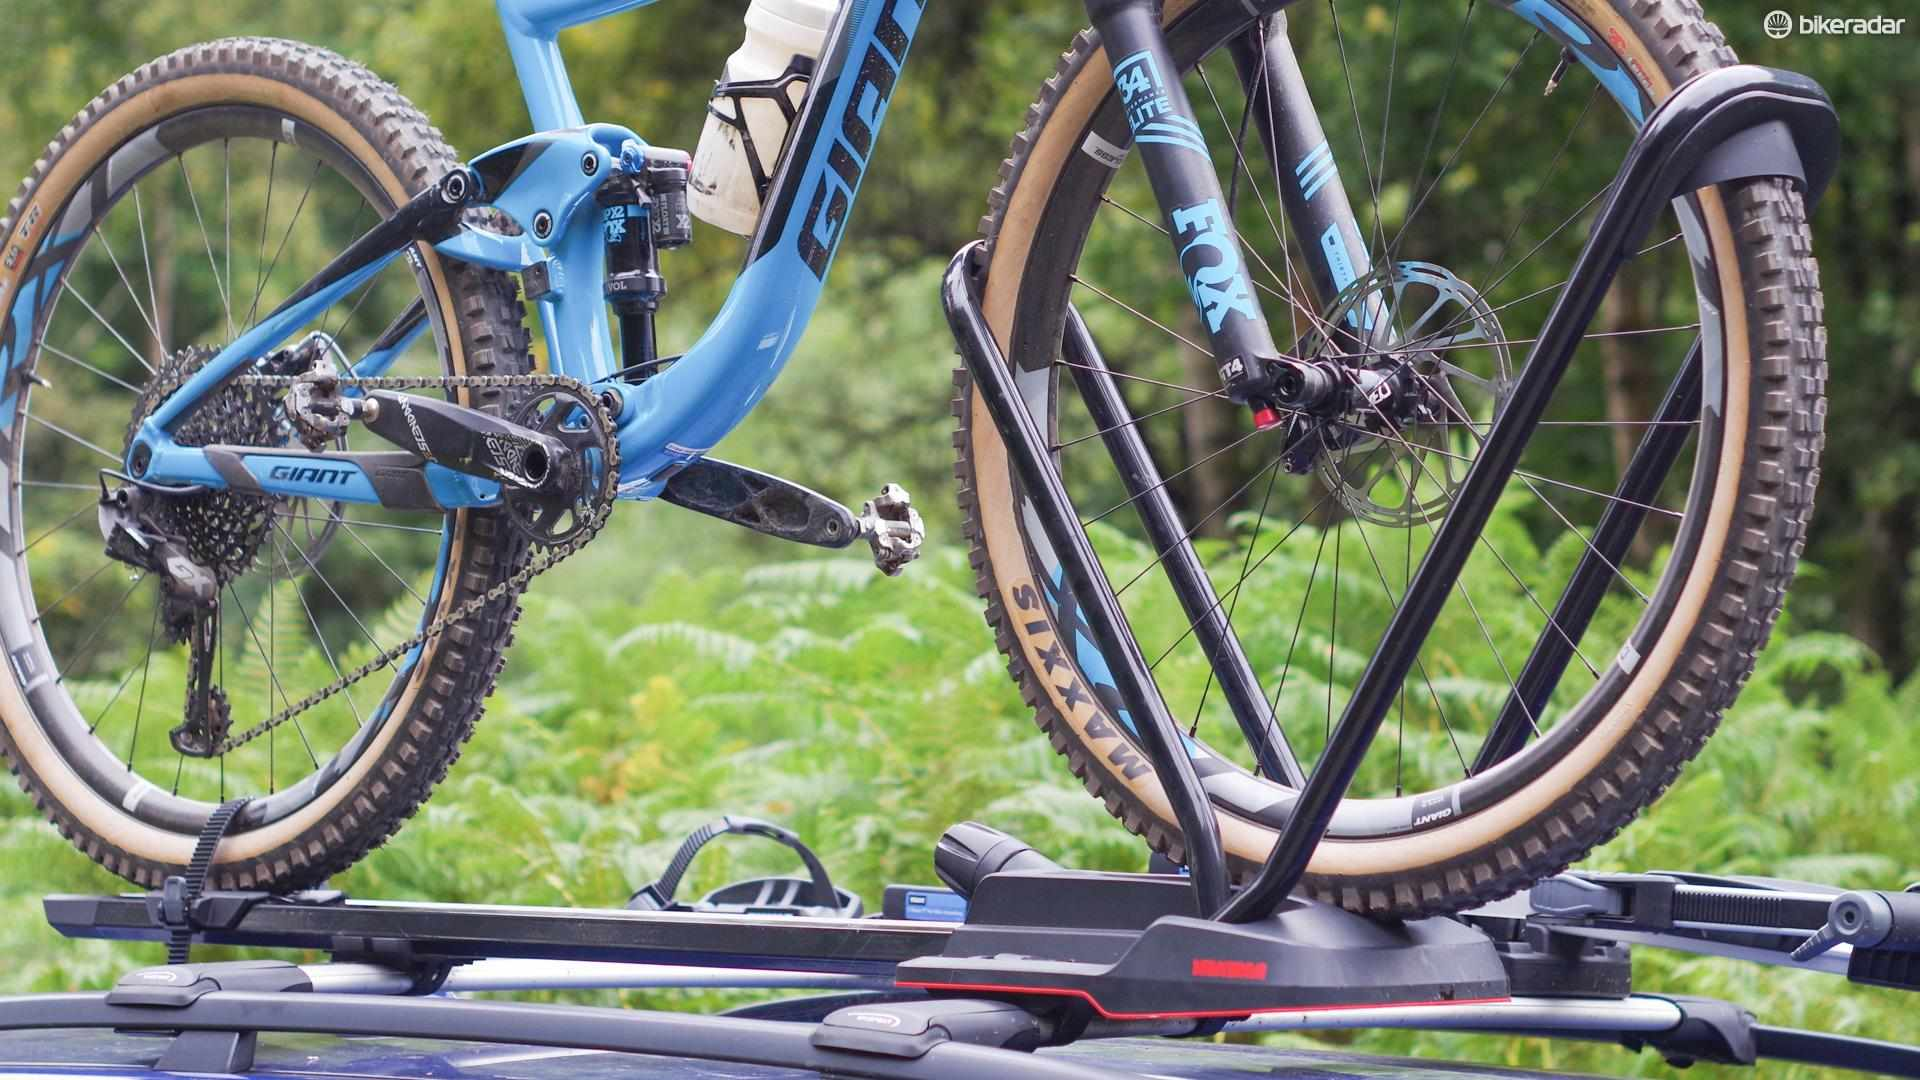 The Yakima Highroad is a premium roof rack which doesn't touch your frame